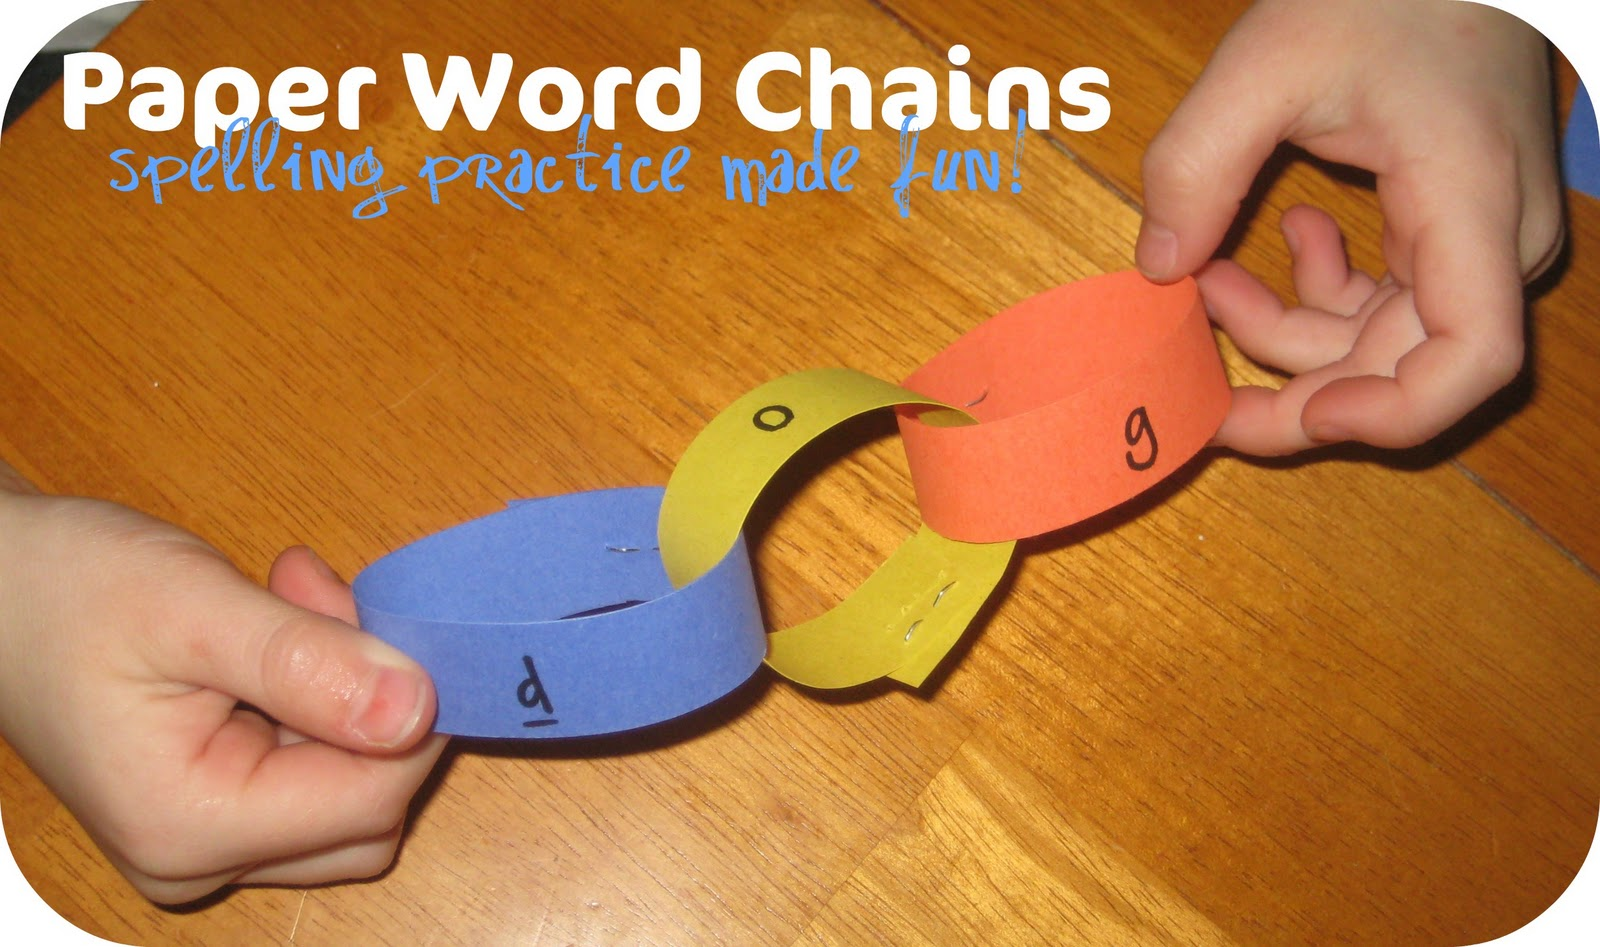 Relentlessly Fun, Deceptively Educational: Paper Word Chains